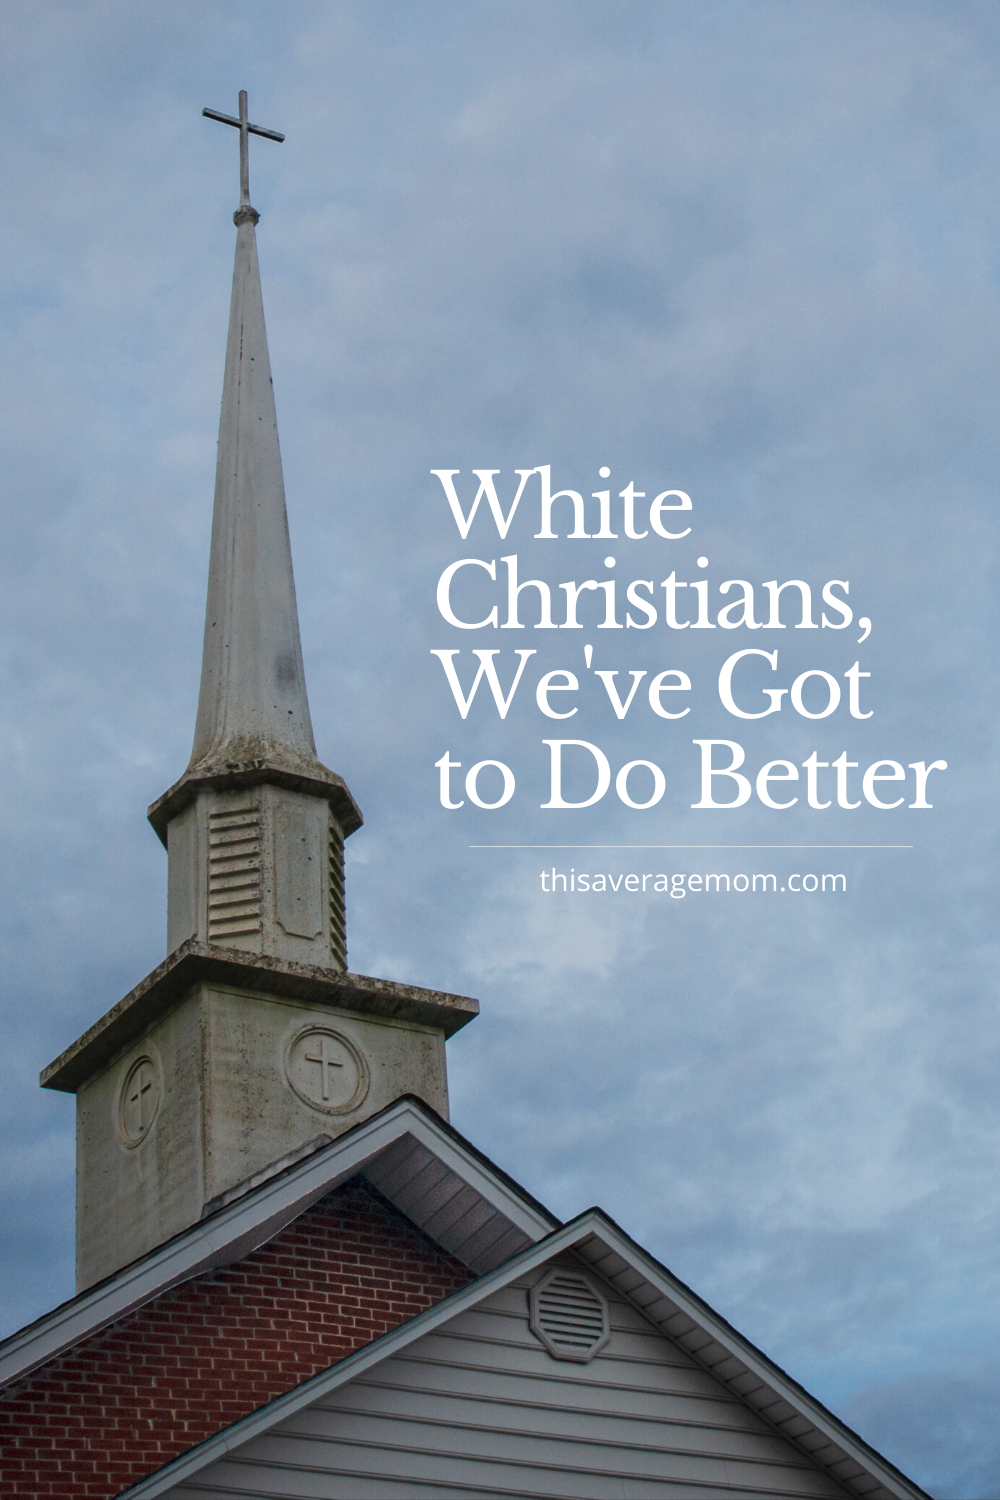 I've been struggling with watching how some people are handling Black Lives Matter. More specifically, white Christians. As a white Christian woman, I think we can do (AND MUST DO) a better job. I'm sharing my thoughts on the blog.